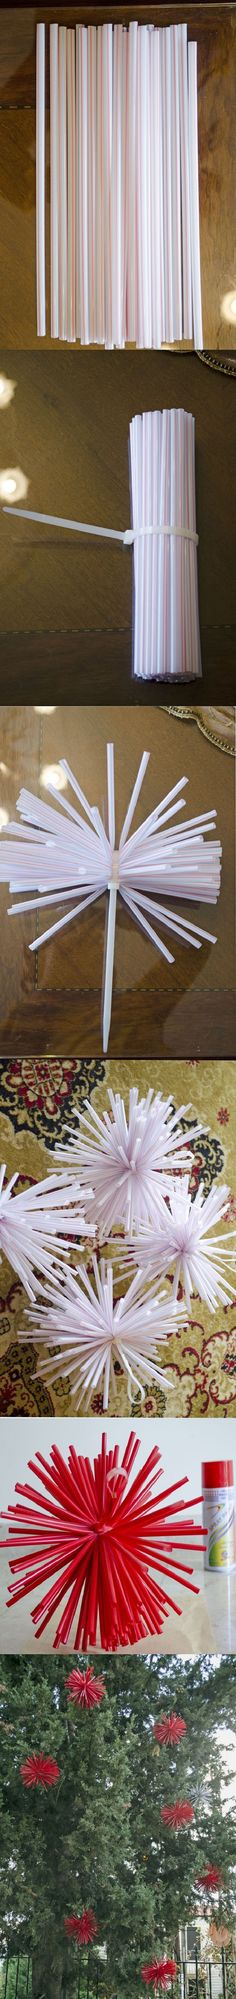 DIY Christmas Decoration Idea - 20 Jaw-Dropping DIY Christmas Party Decorations | GleamItUp